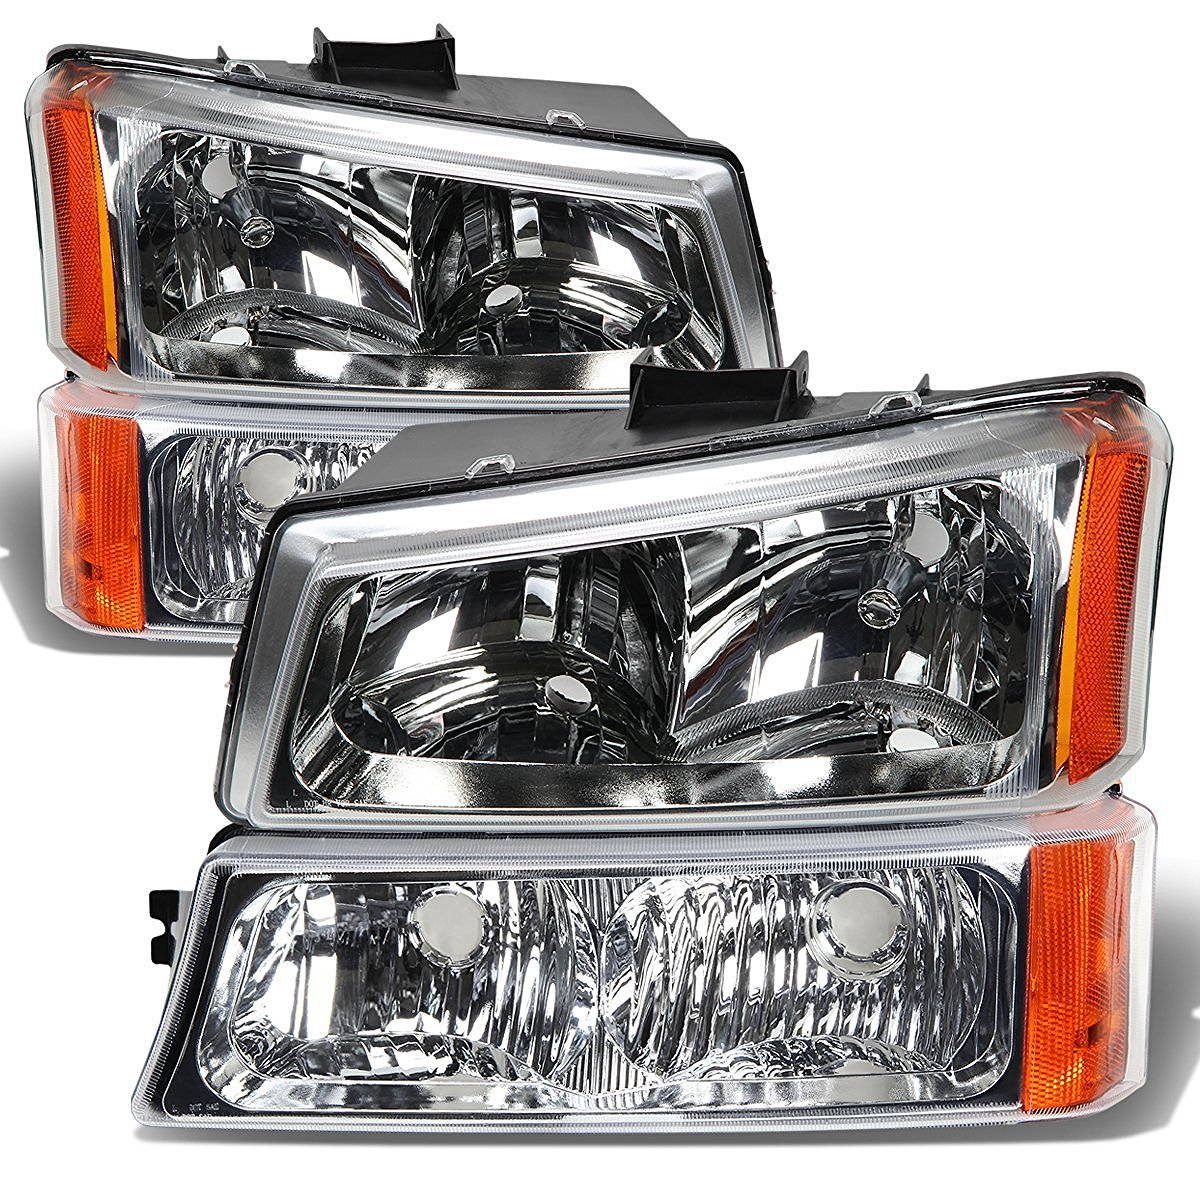 Headlights Depot Replacement for Chevrolet Silverado Chrome 4-Piece Headligths Set with Clear Lens HeadlightsDepot GM2502224 GM2503224